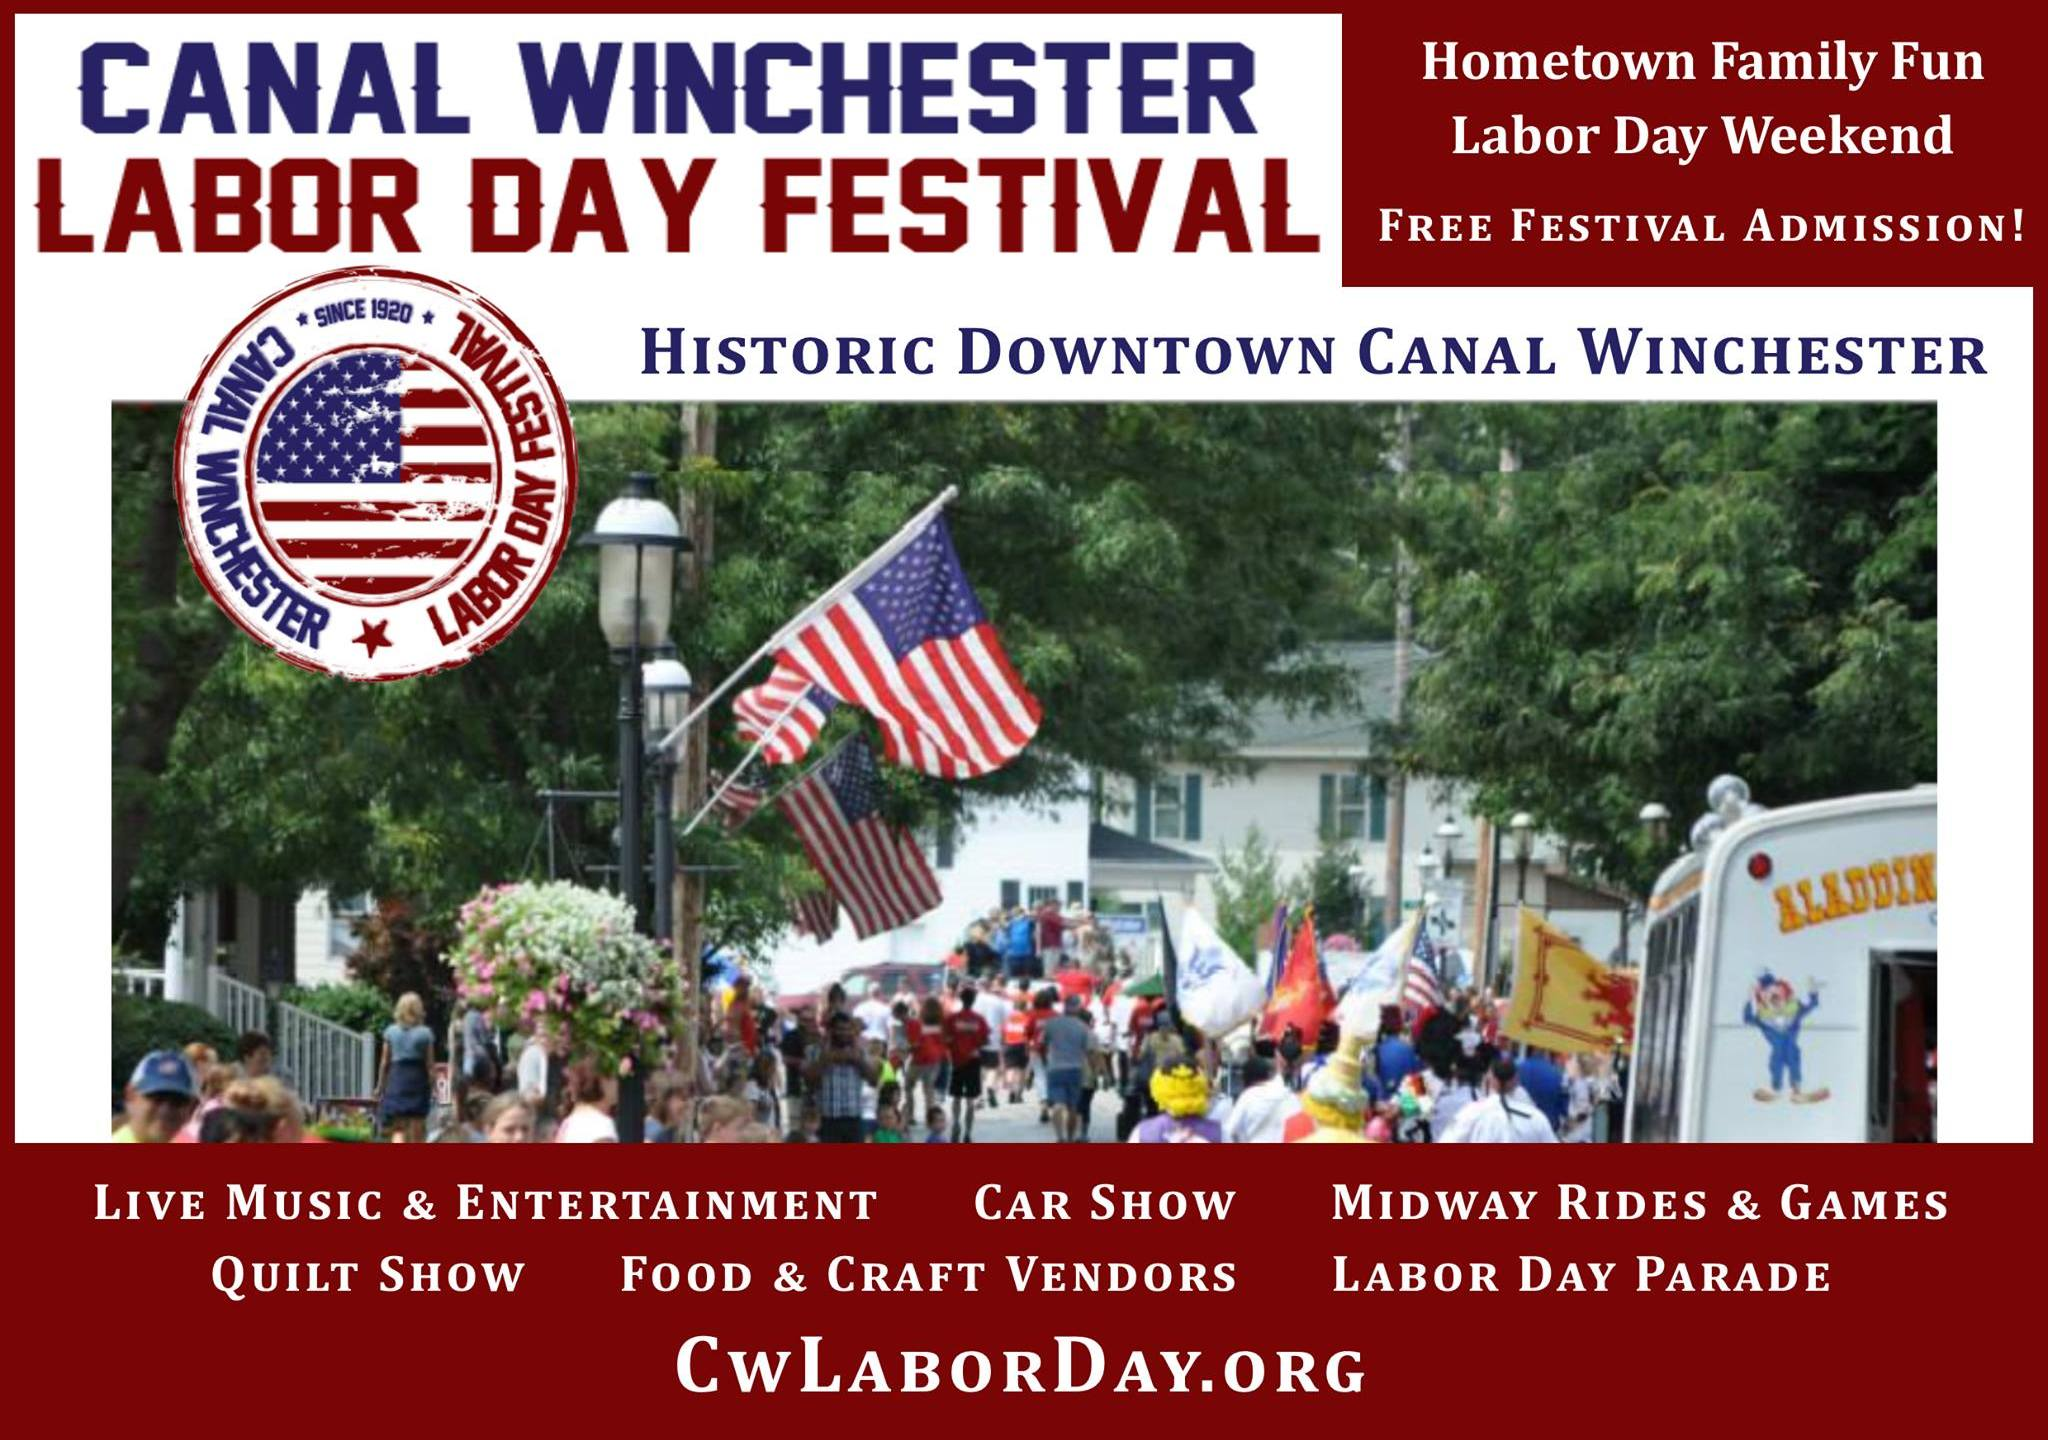 Winchester Halloween Parade 2020 Canal Winchester Labor Day Festival cancelled | NBC4 WCMH TV